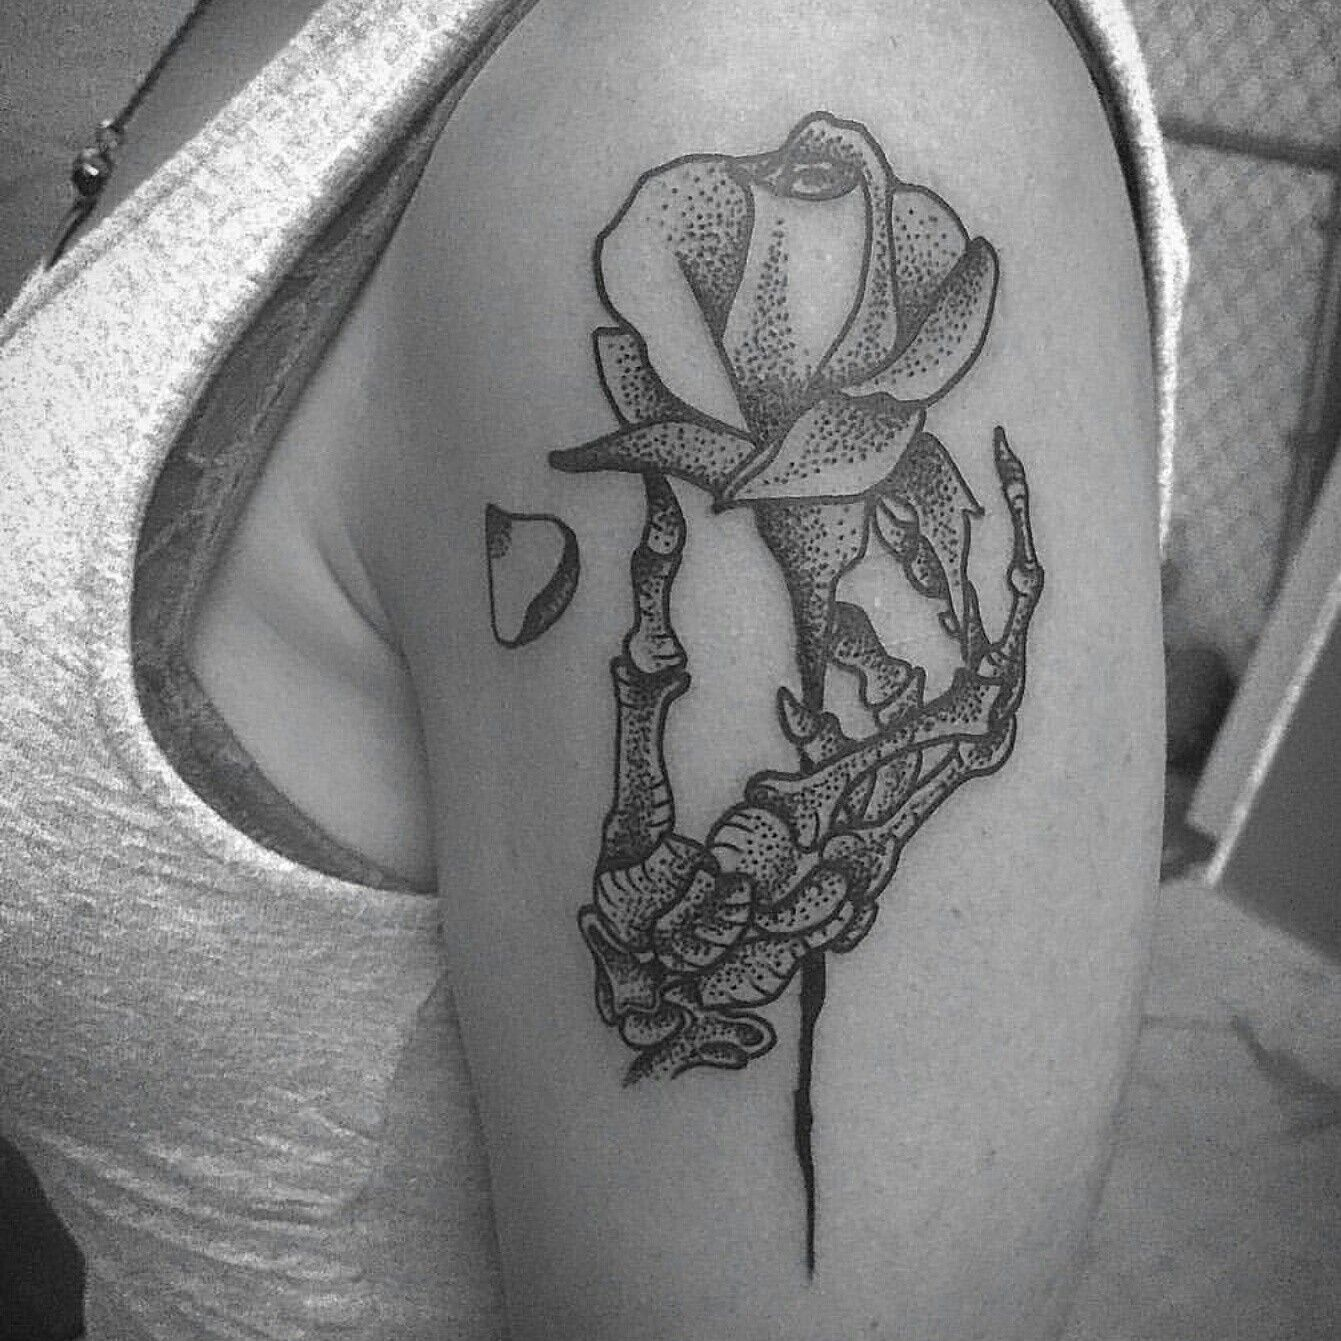 Skeleton hand holding a rose tattoo. First tattoo